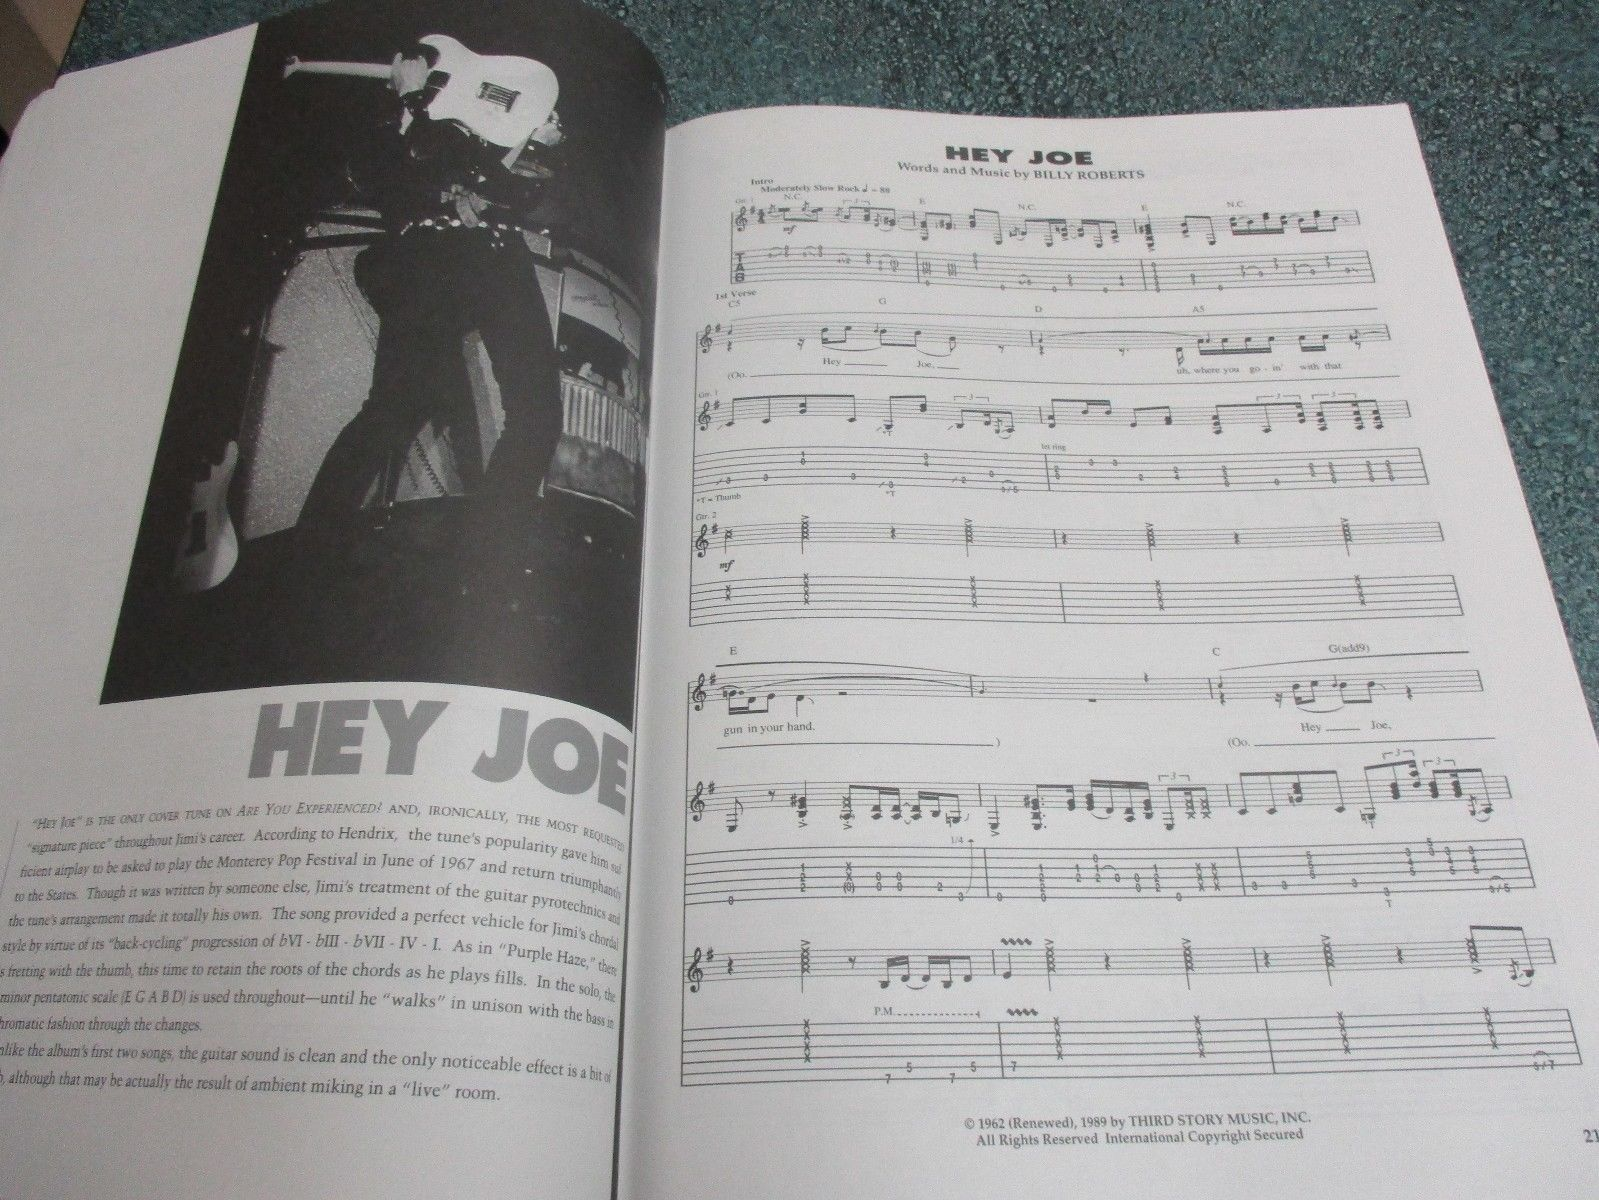 JIMI HENDRIX ARE YOU EXPERIENCED Music Song Book Guitar/Bass/Drum TRANSCRIPTIONS